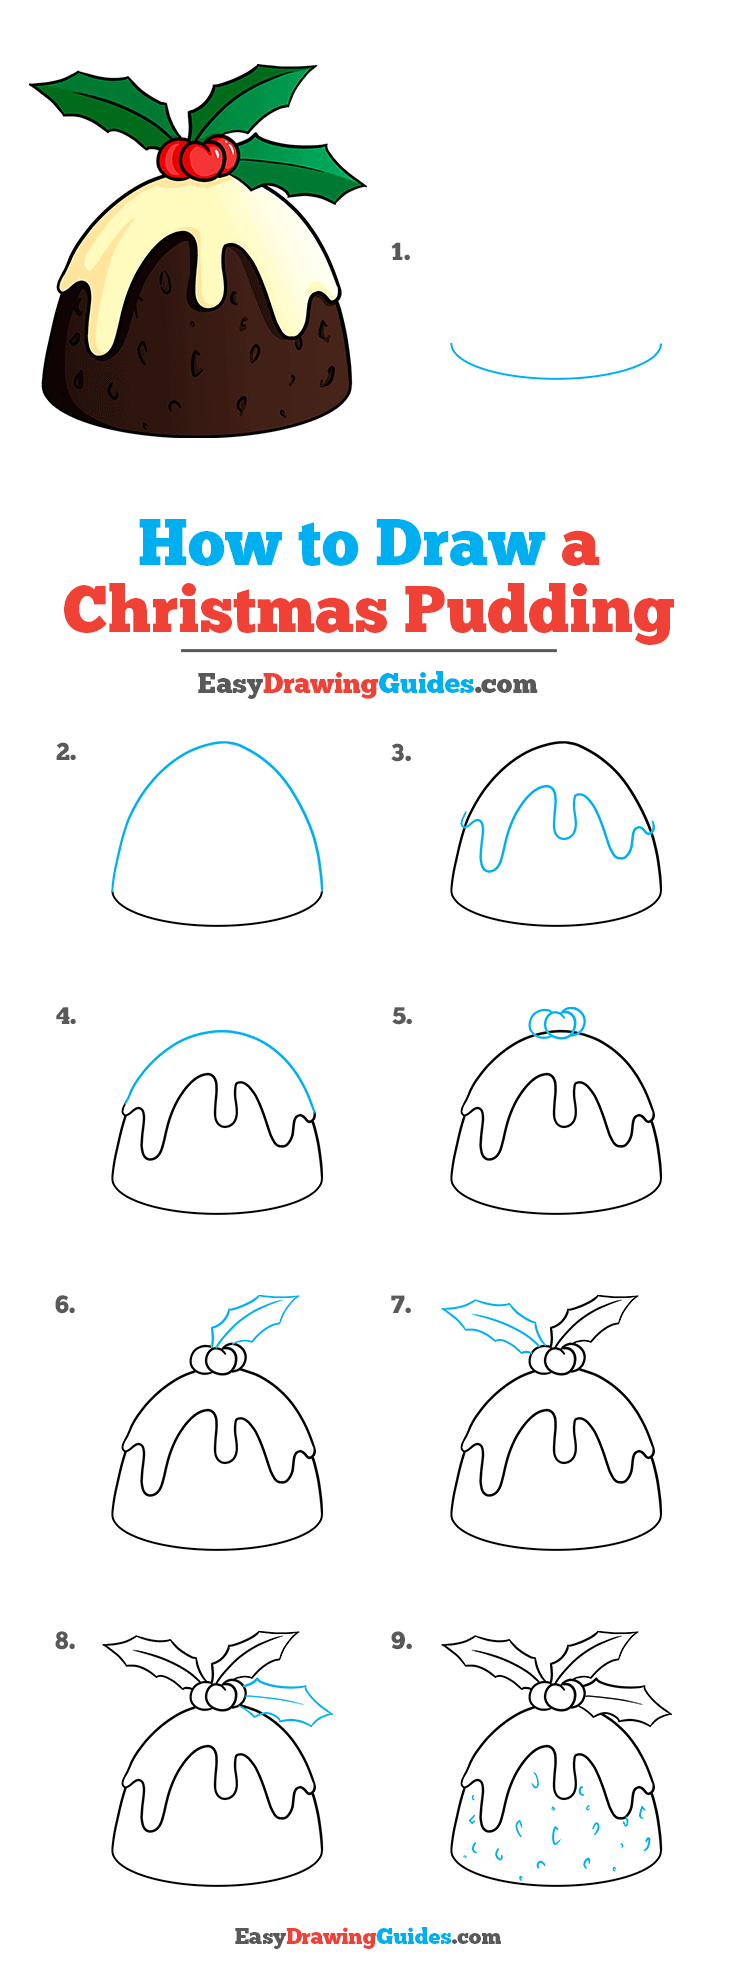 How to Draw a Christmas Pudding Step by Step Tutorial Image